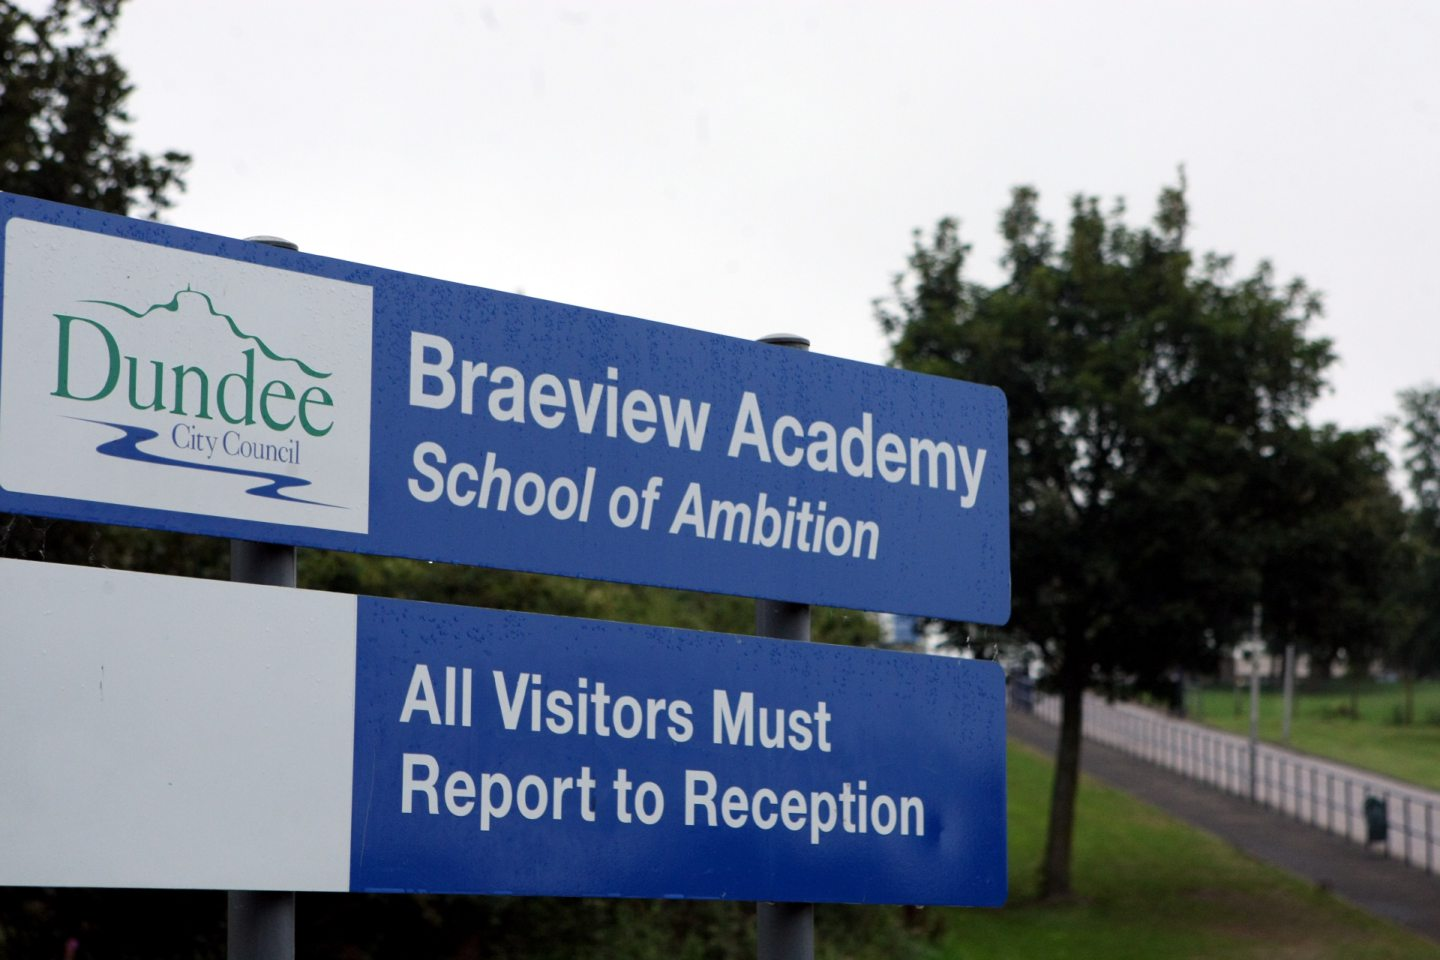 Braeview Academy Building exterior of Braeview Academy, Dundee.  Braeview Academy sign.